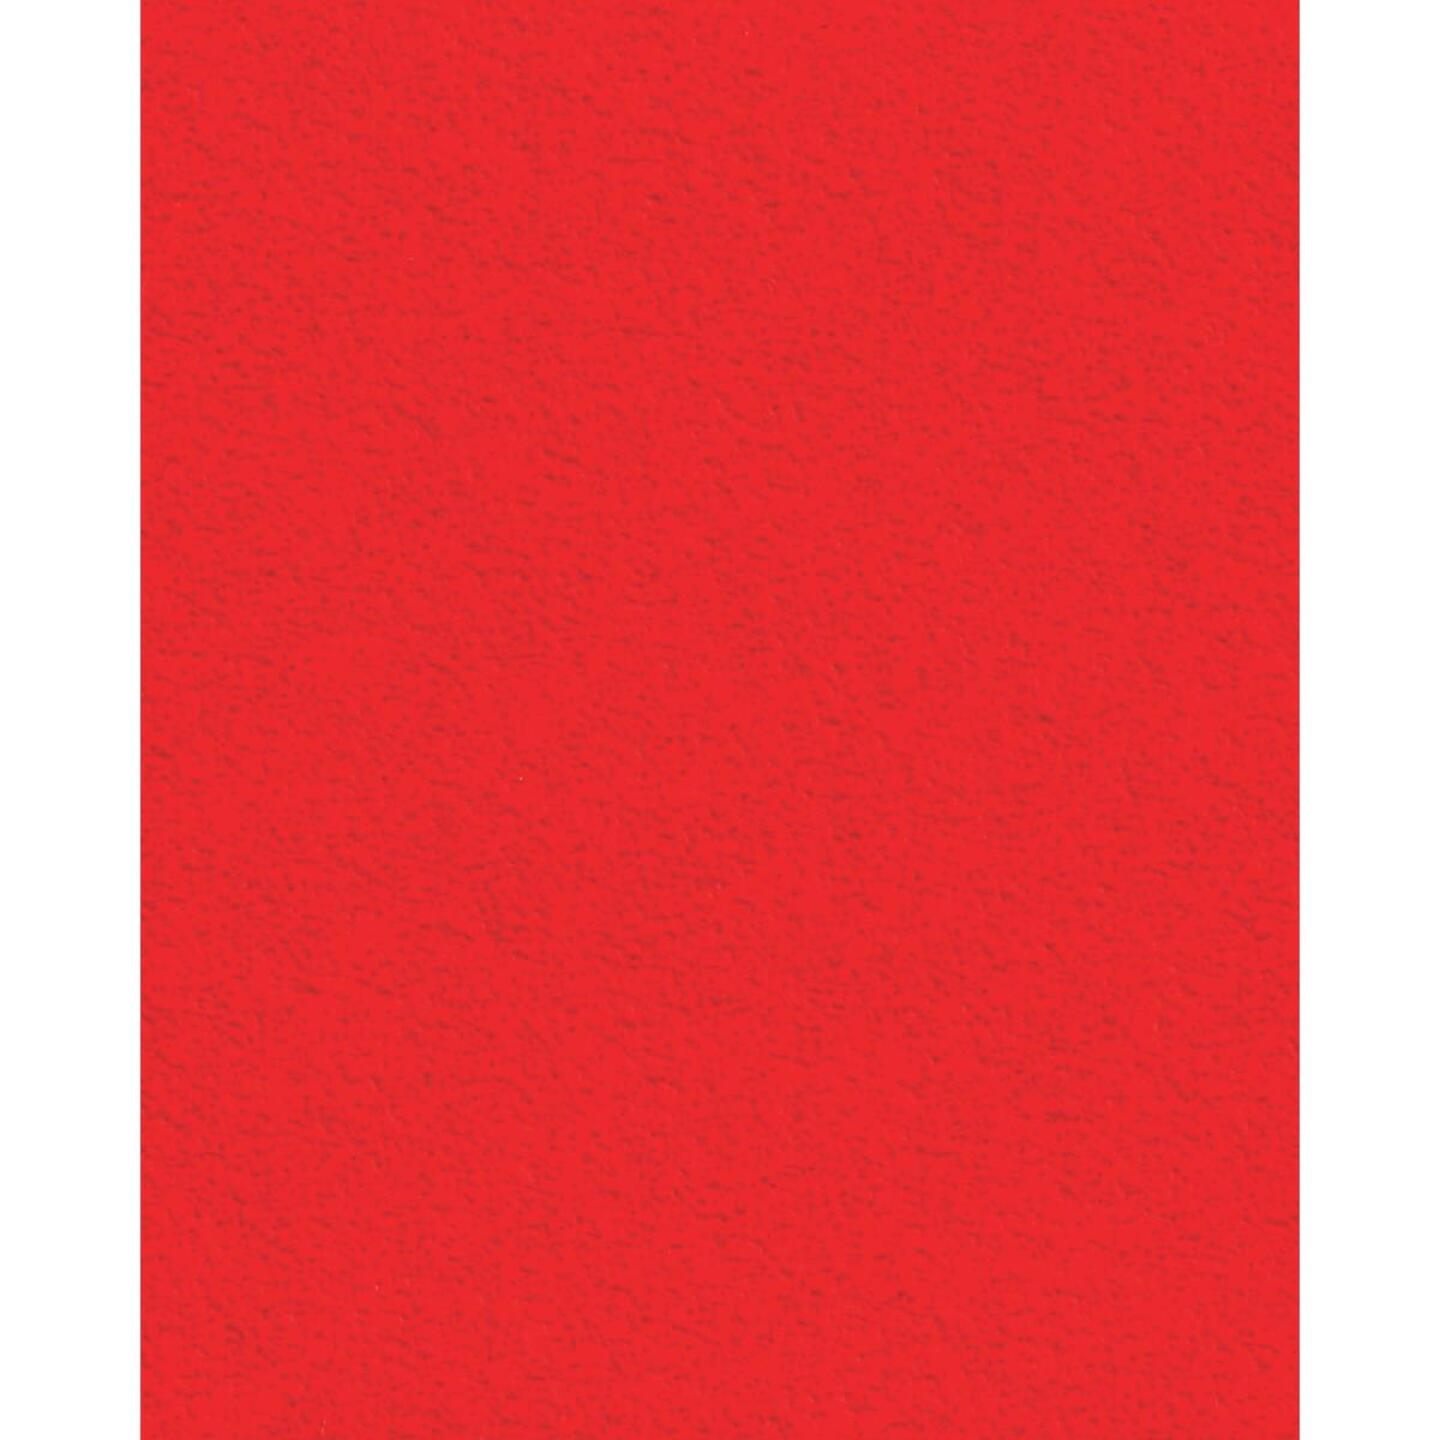 Diablo Clamp-On 100 Grit 4-1/2 In. x 5-1/2 In. 1/4 Sheet Sandpaper (6-Pack) Image 2